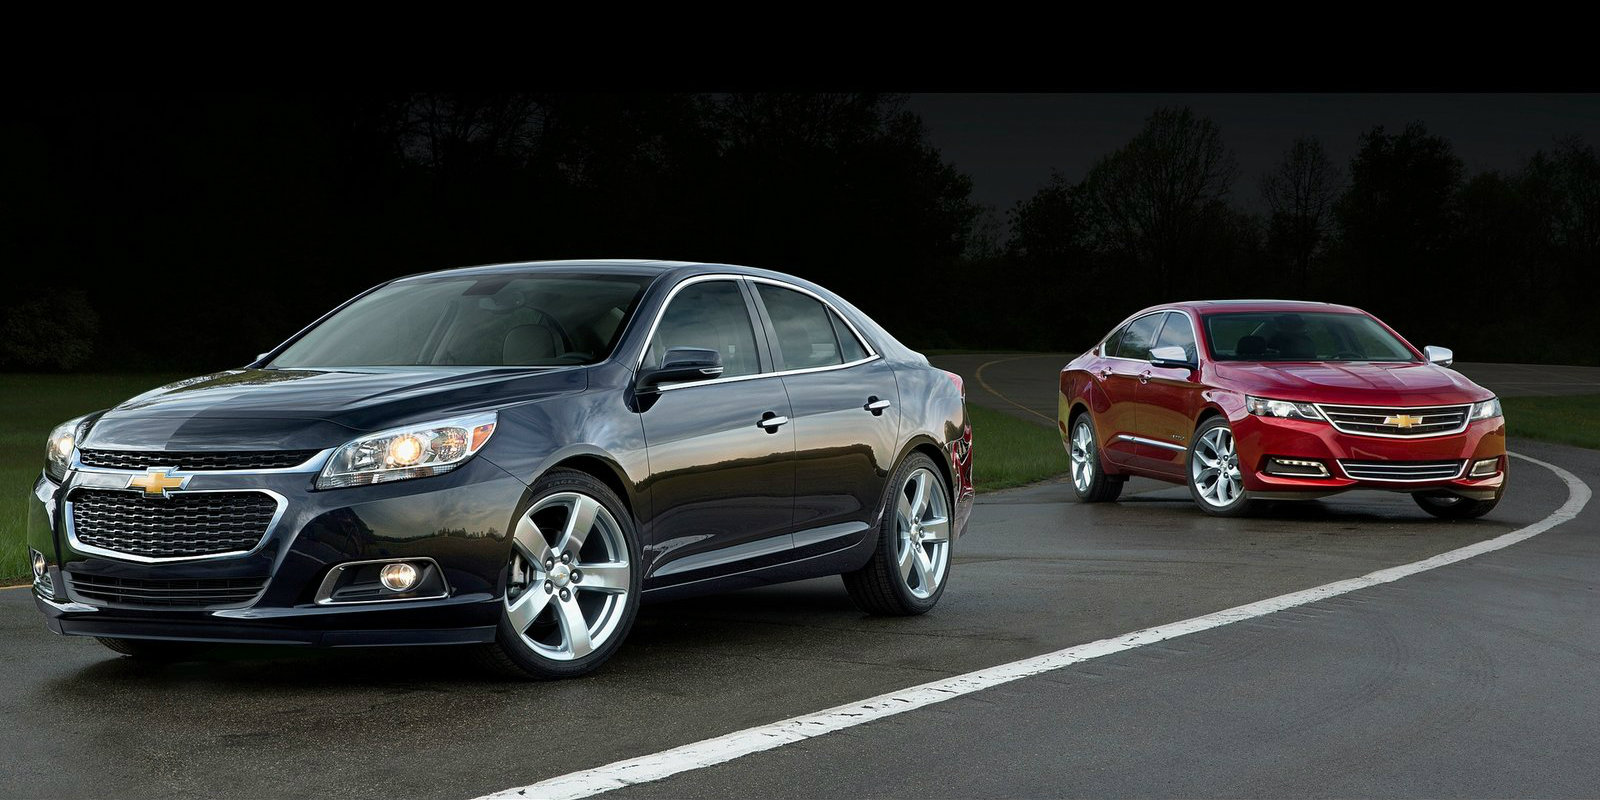 2015 chevrolet malibu gets onstar 4g lte first autoevolution. Black Bedroom Furniture Sets. Home Design Ideas